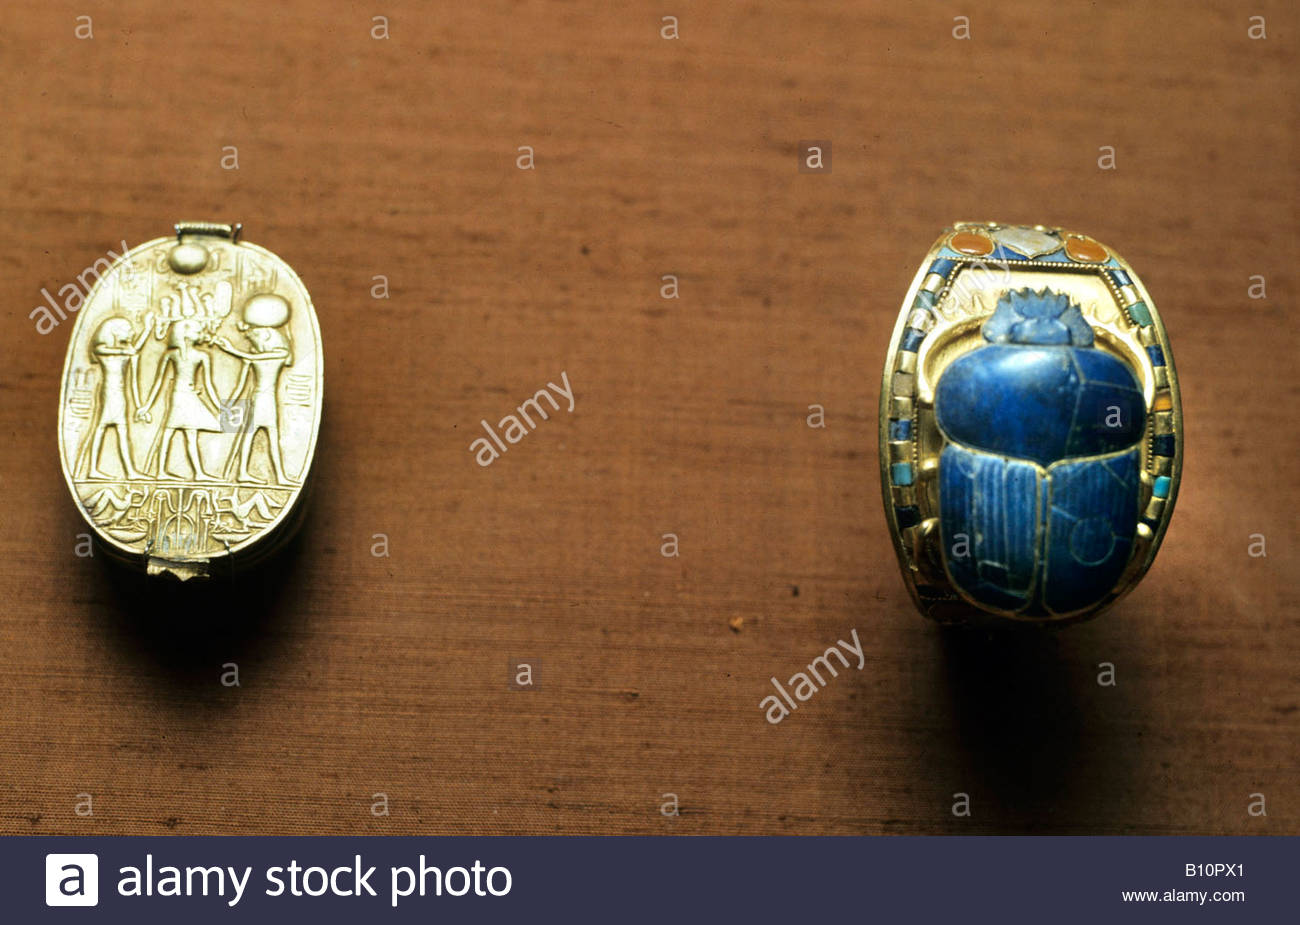 Tutankhamun Treasure scarab and bracelet Egypt Copyright AAAC Ltd - Stock Image